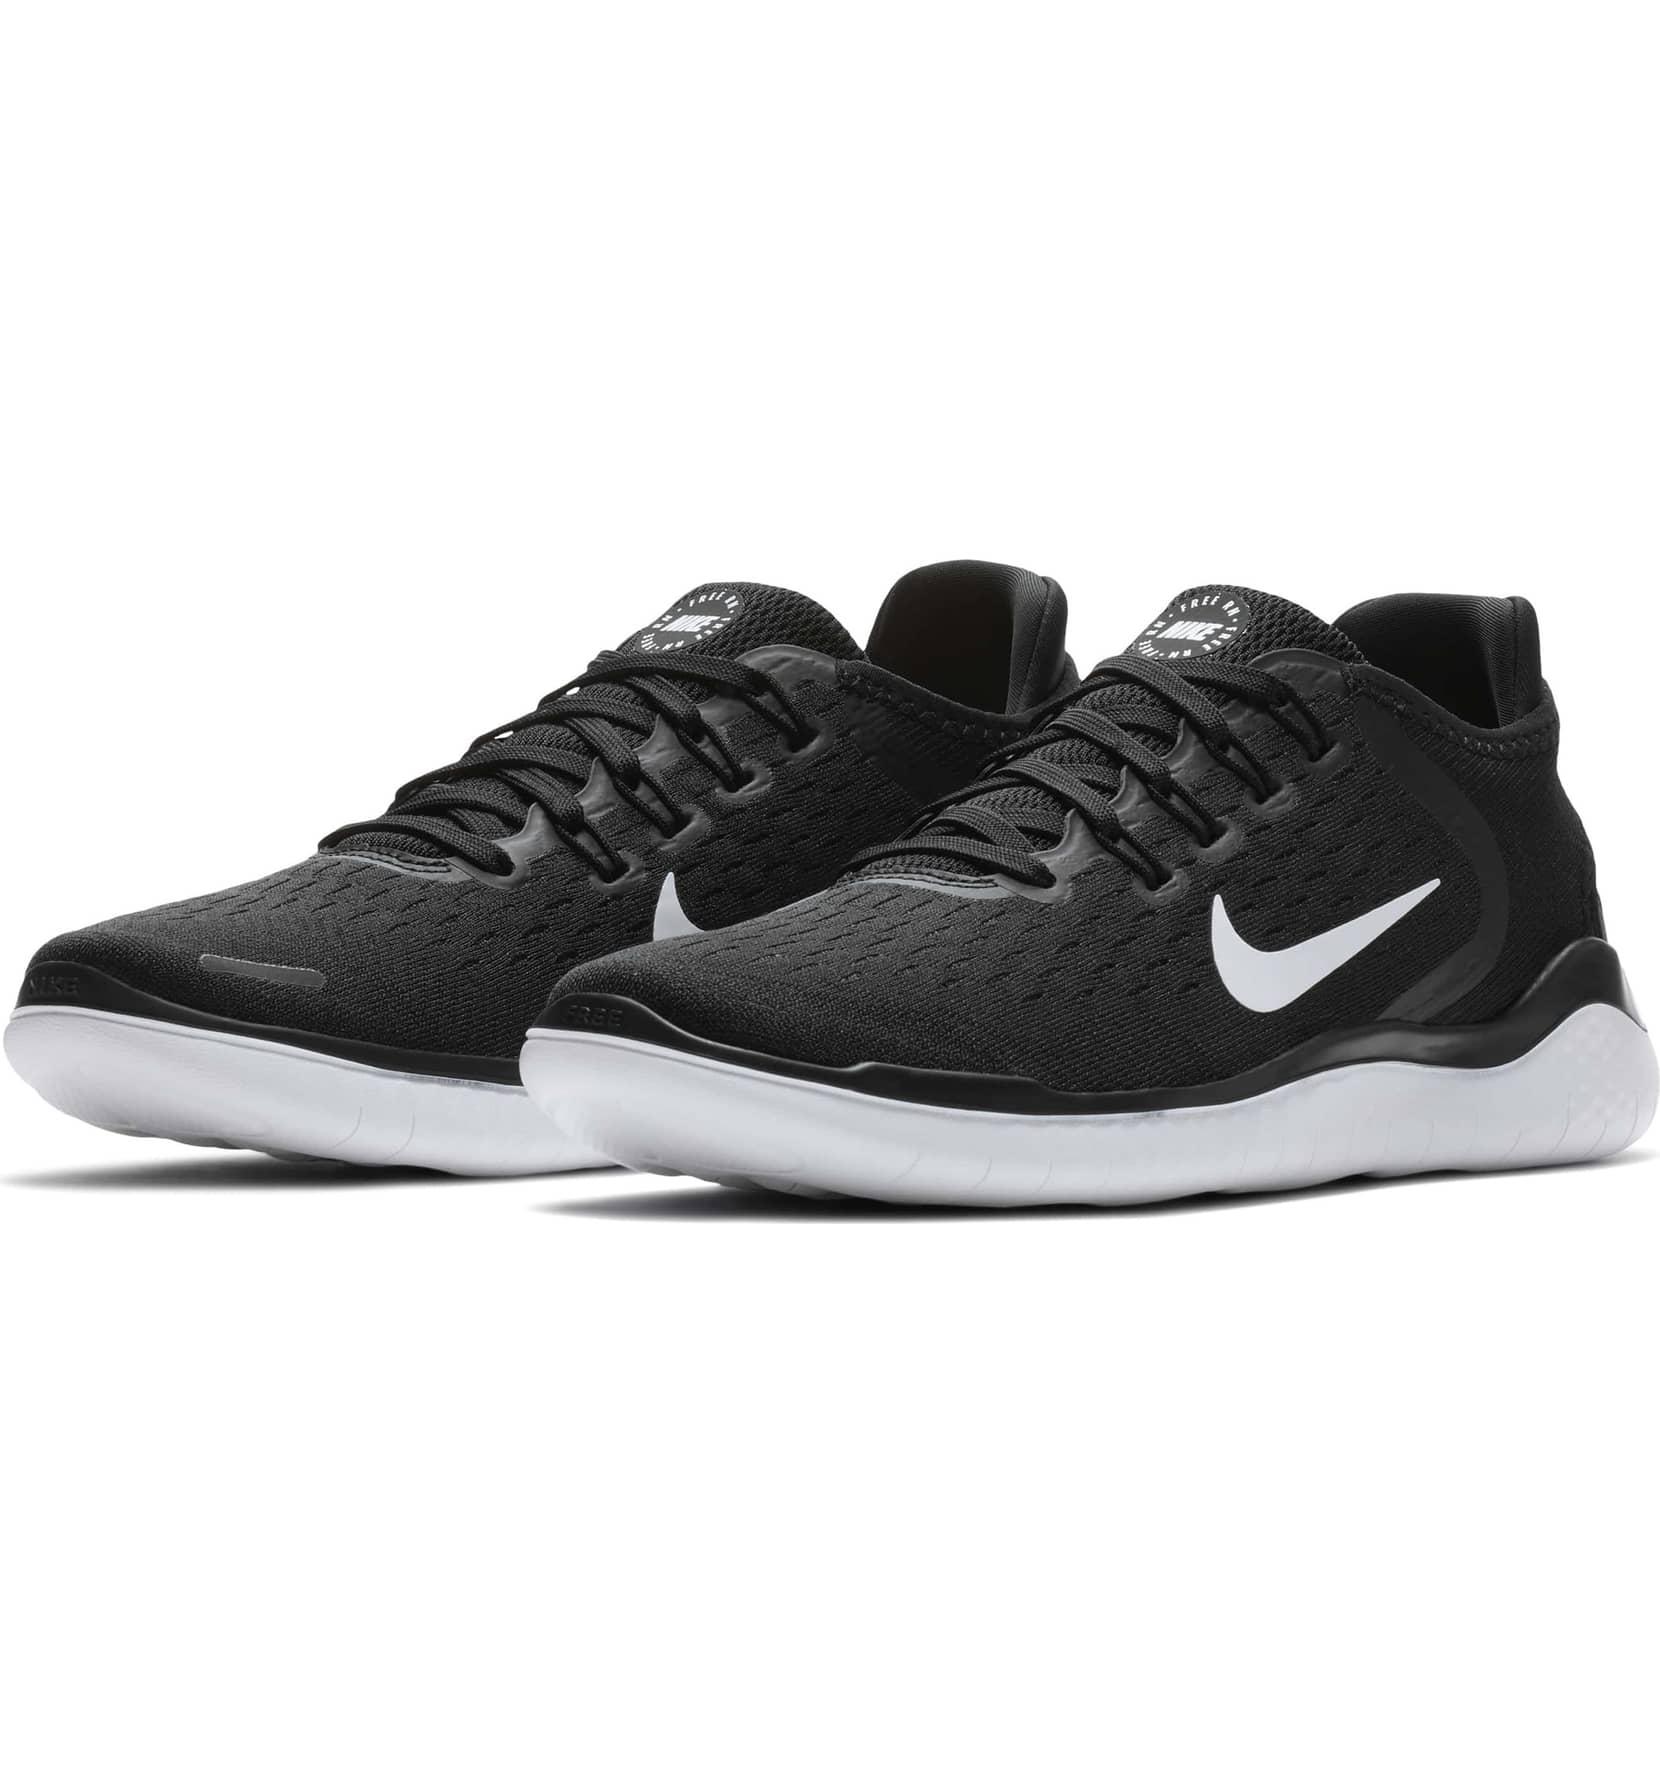 e46ee9920fd Nordstrom  Nike Free RN 2018 Running Shoes – now only  50 (reg  100)  Shipped!